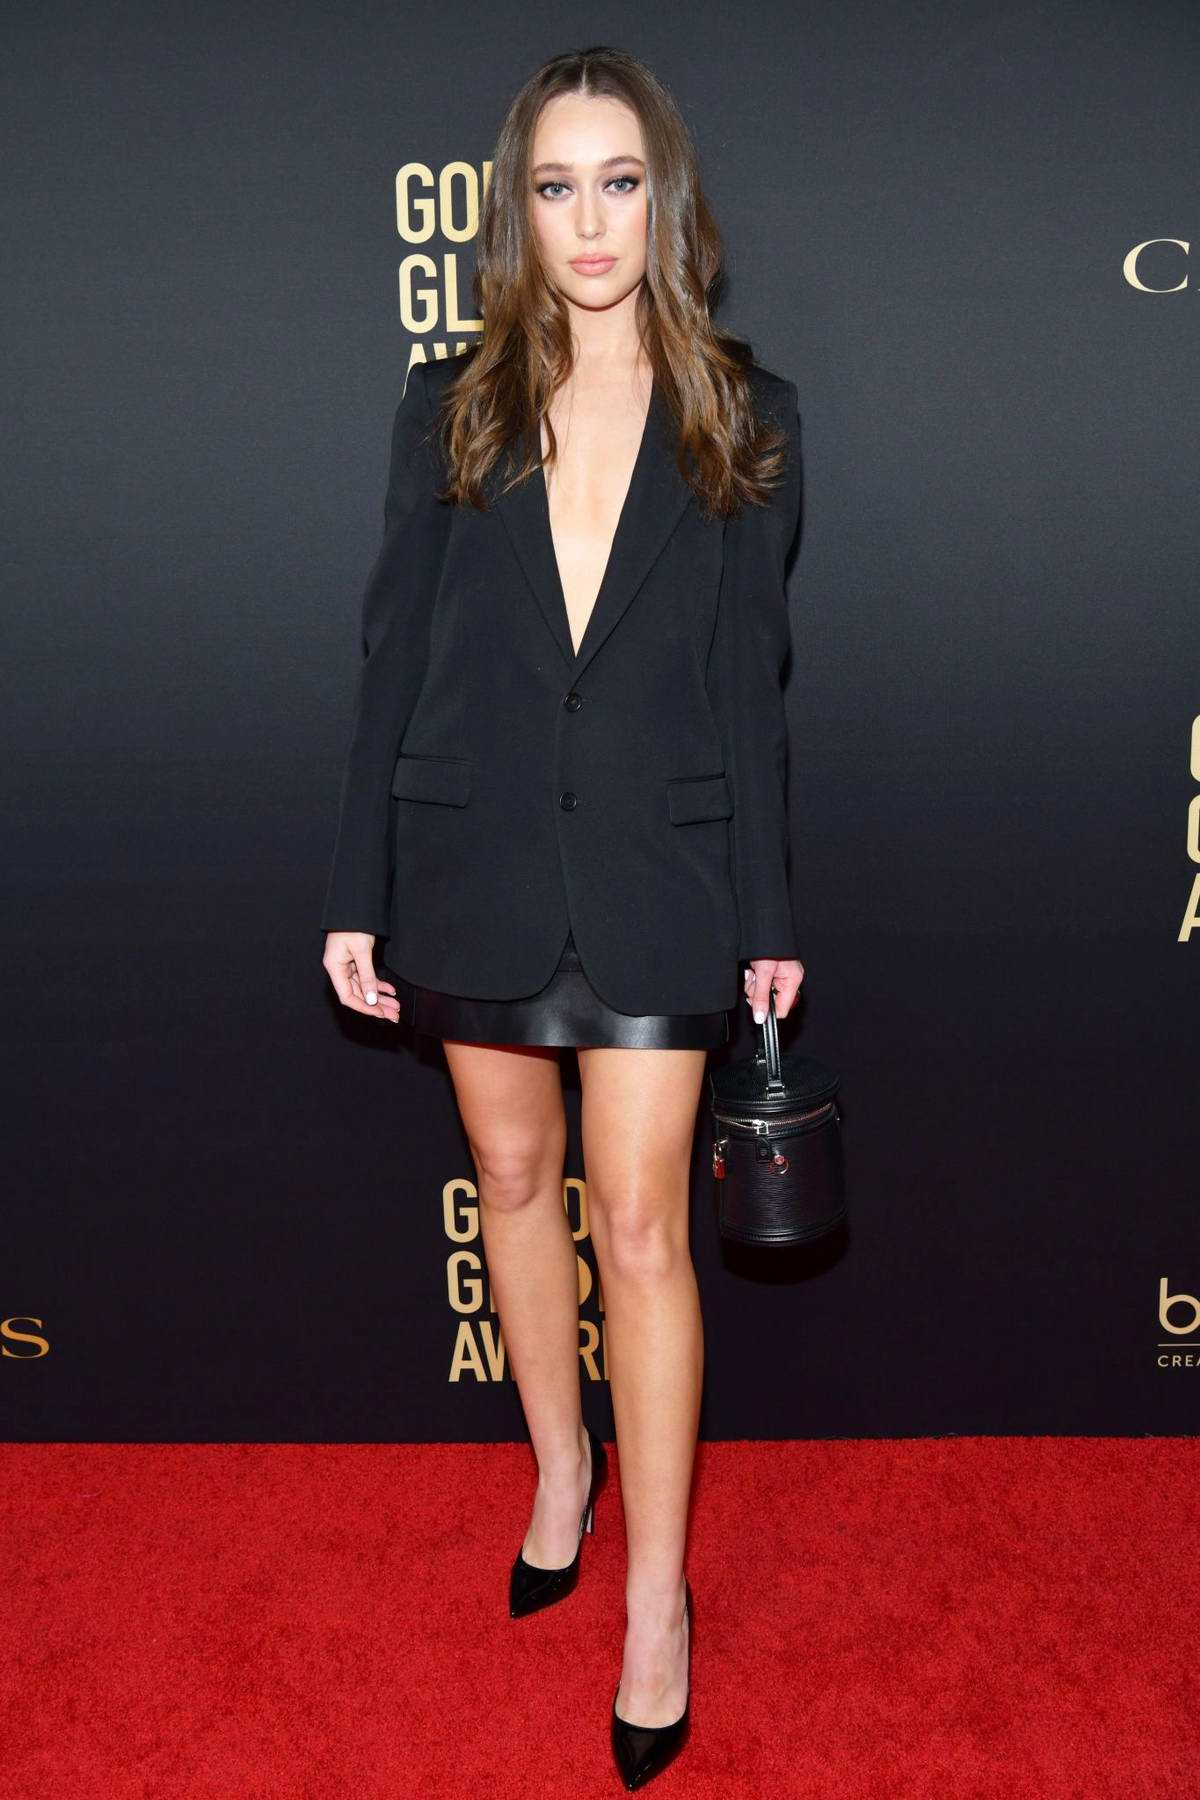 Alycia Debnam-Carey attends the Golden Globe Ambassador Launch Party in Los Angeles